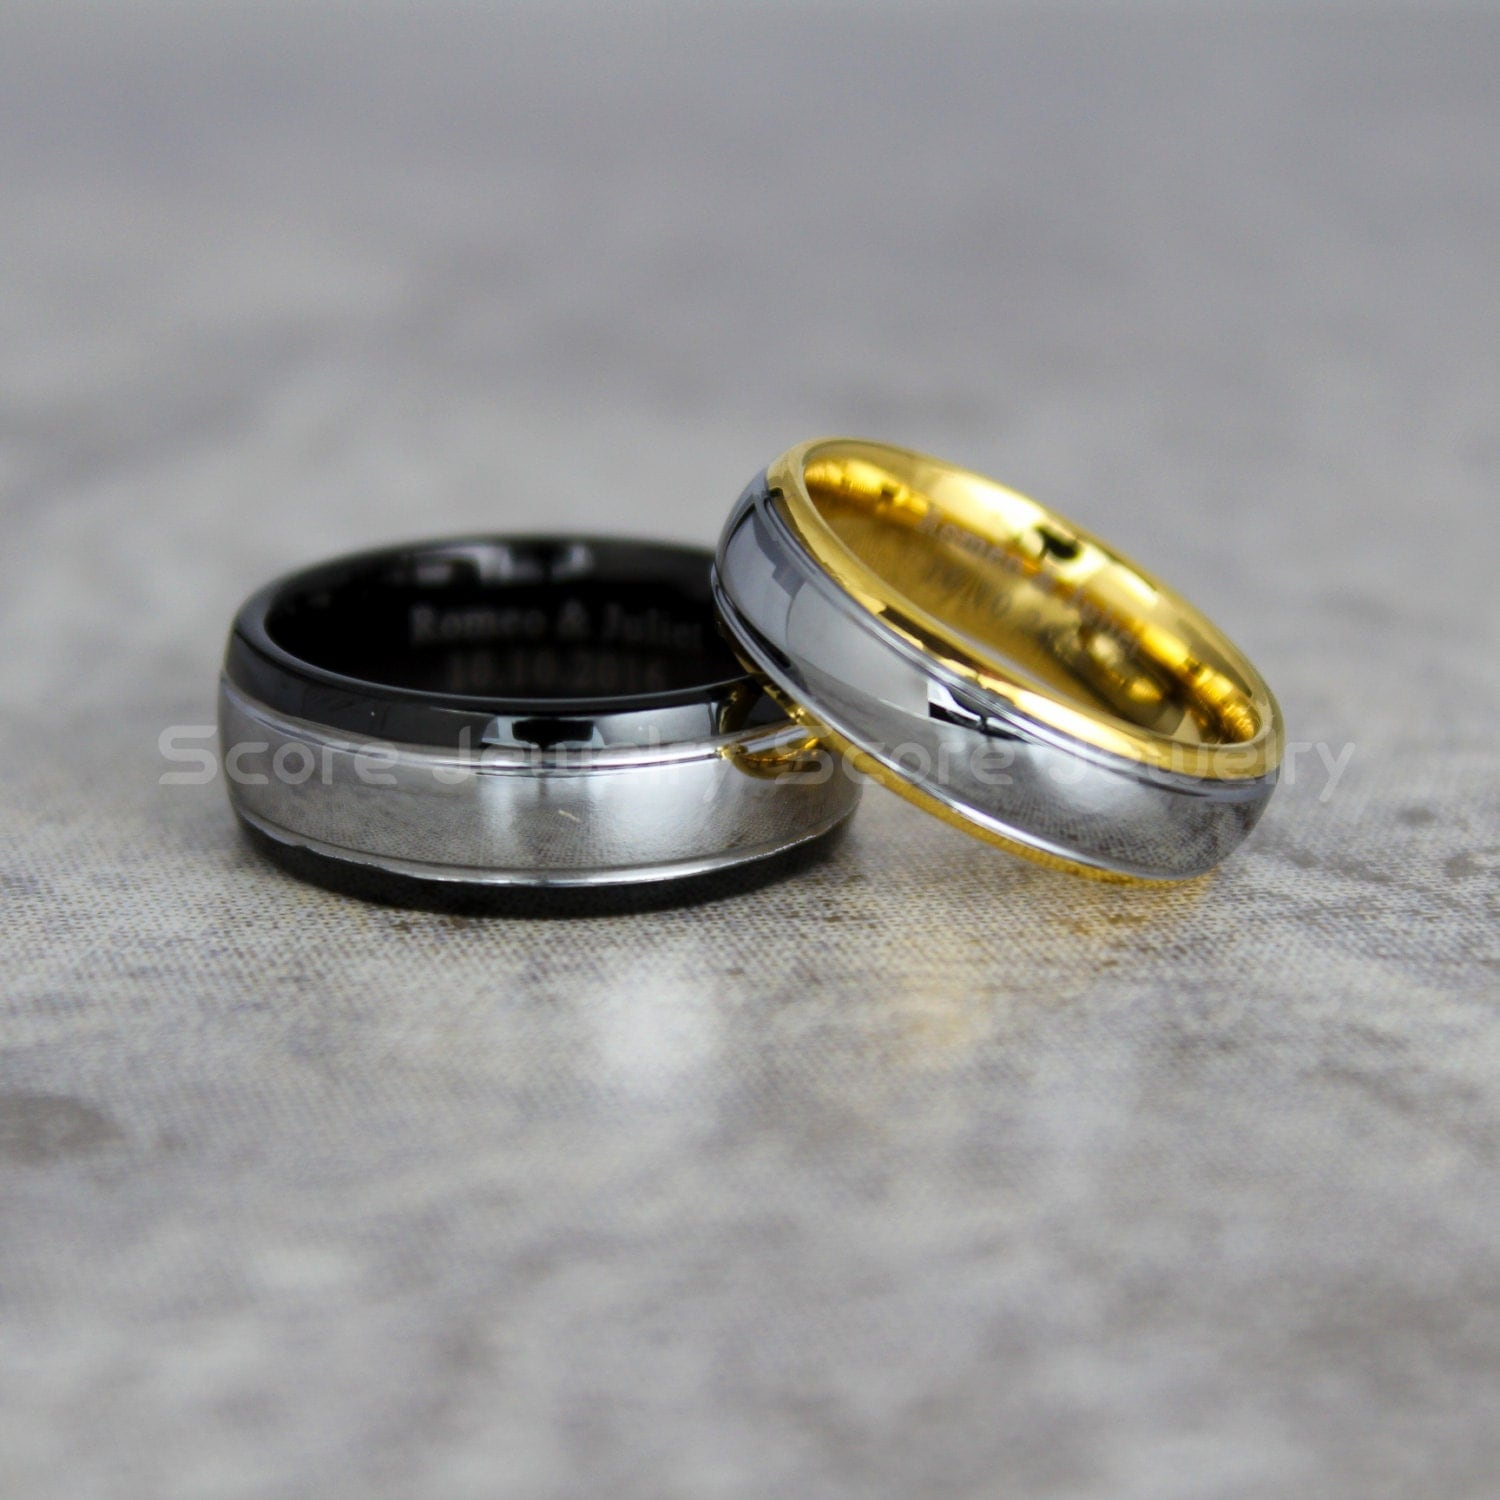 Bands Rings Jewelry